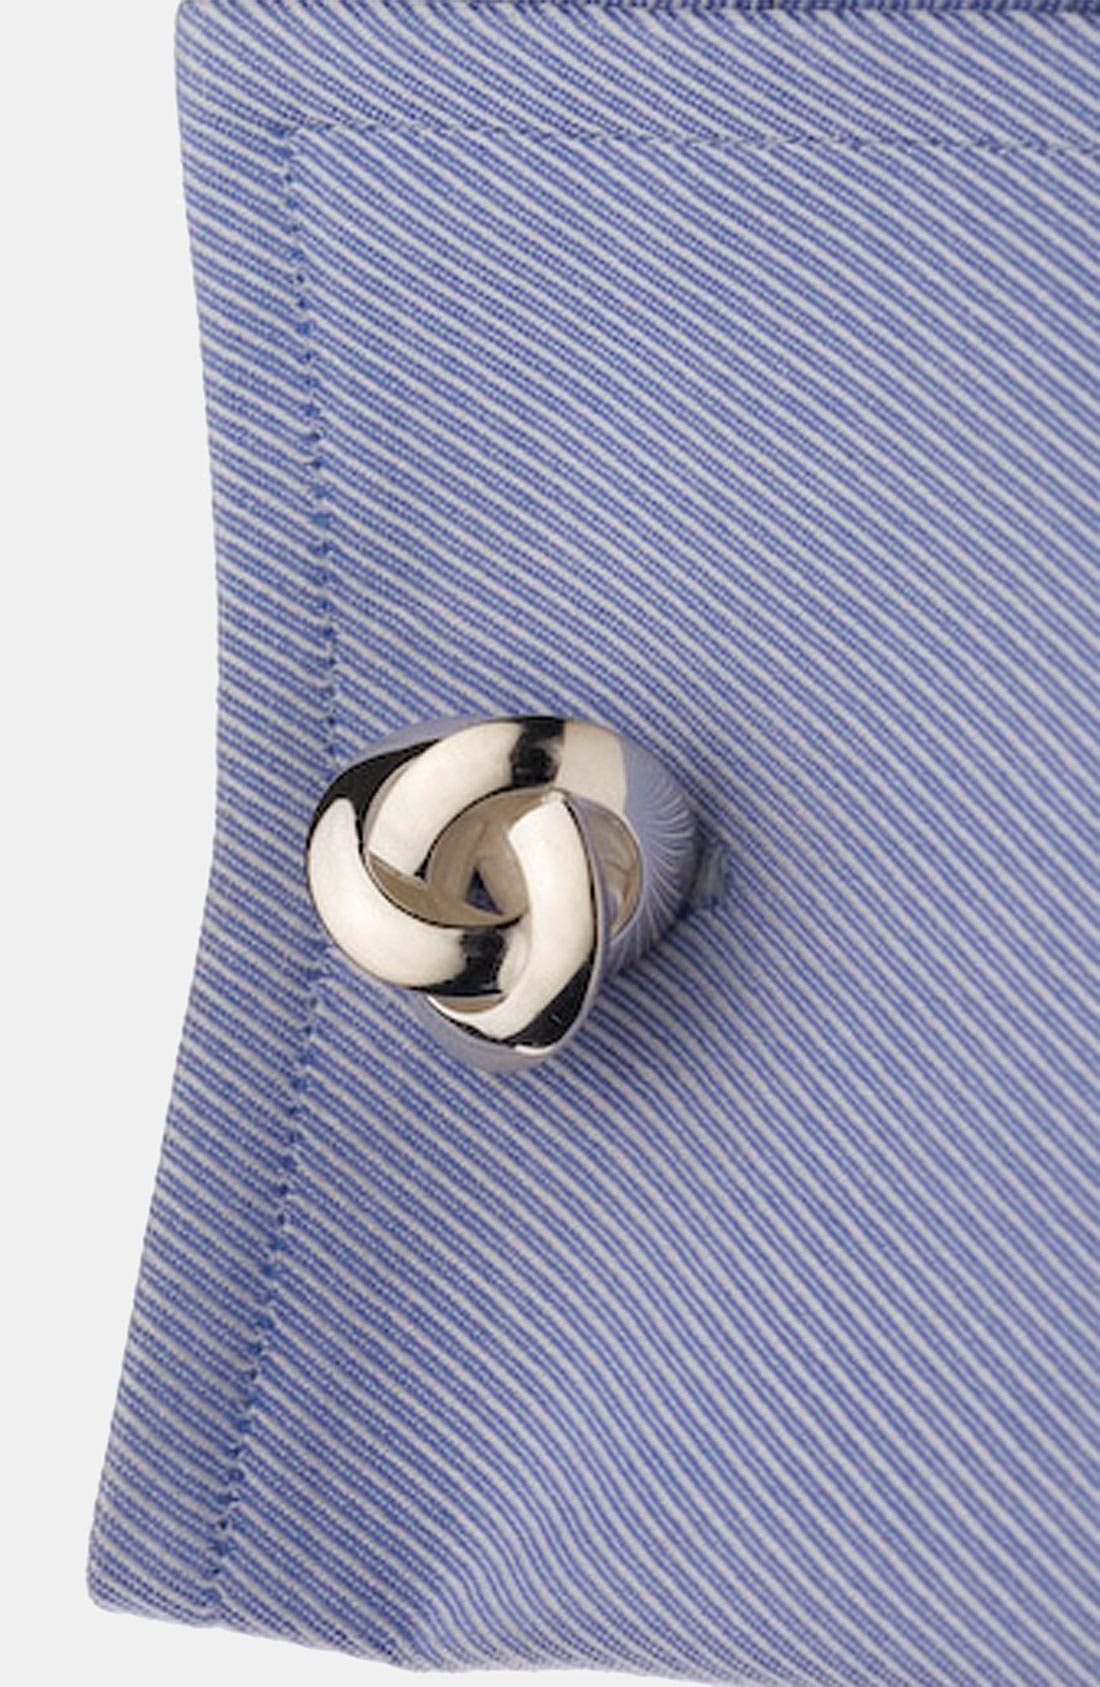 Knot Cuff Links,                             Alternate thumbnail 2, color,                             040